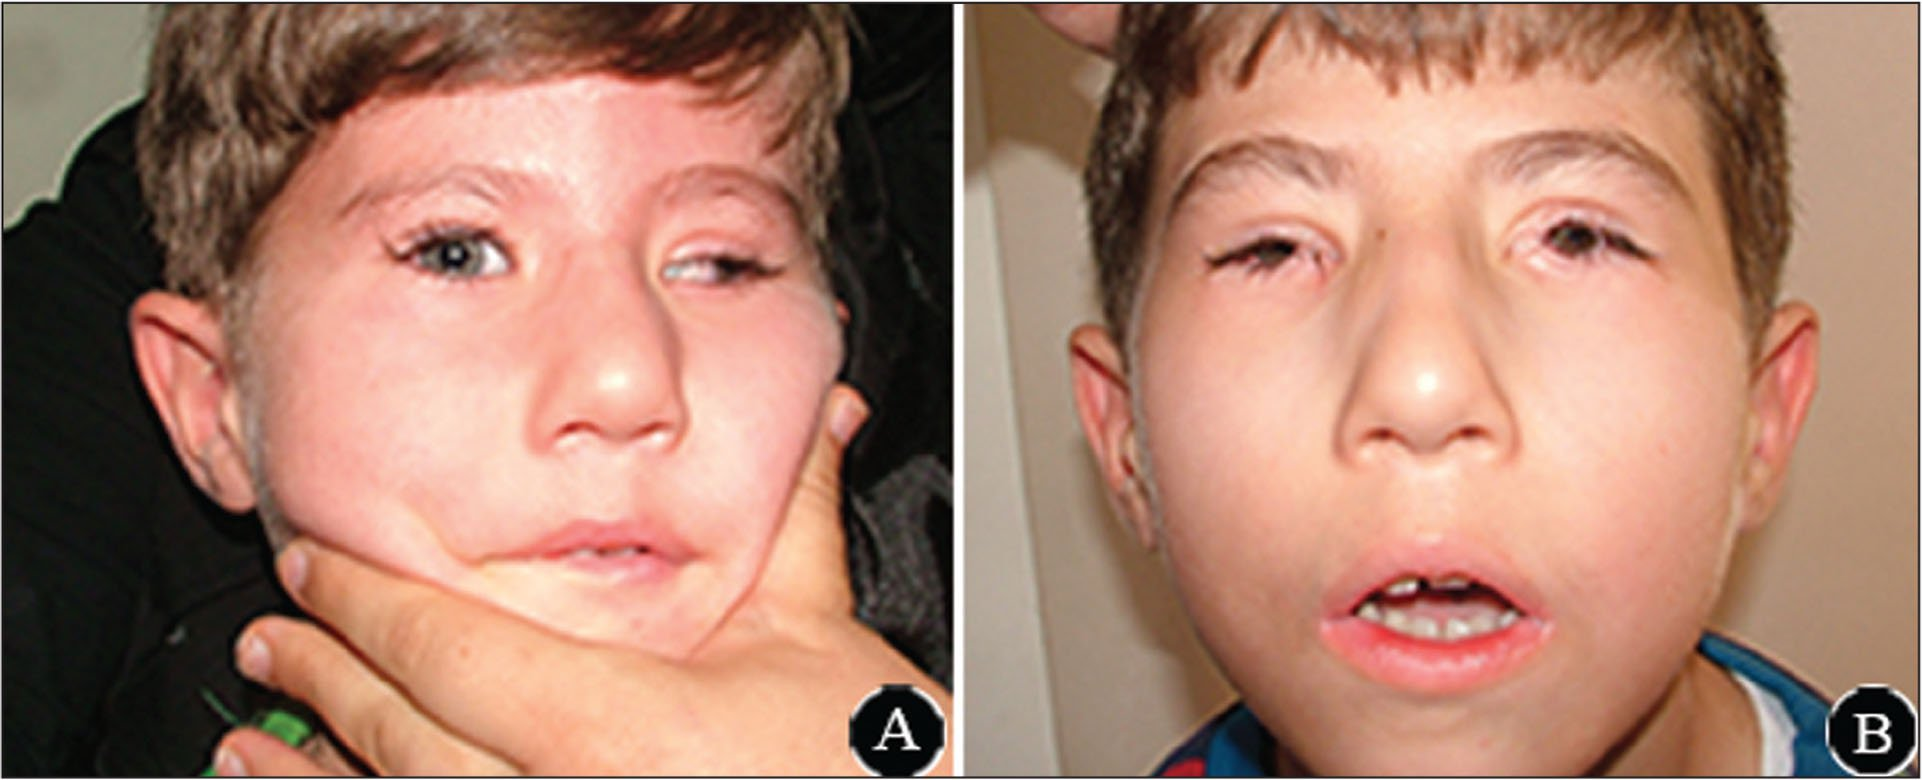 Photographs of case 2. (A) Expressionless face and large angle exotropia. (B) Improvement in exotropia after strabismus surgeries and improvement in dry eye after puncti occlusion and tarsorrhaphy in the medial and lateral eyelids of both eyes.